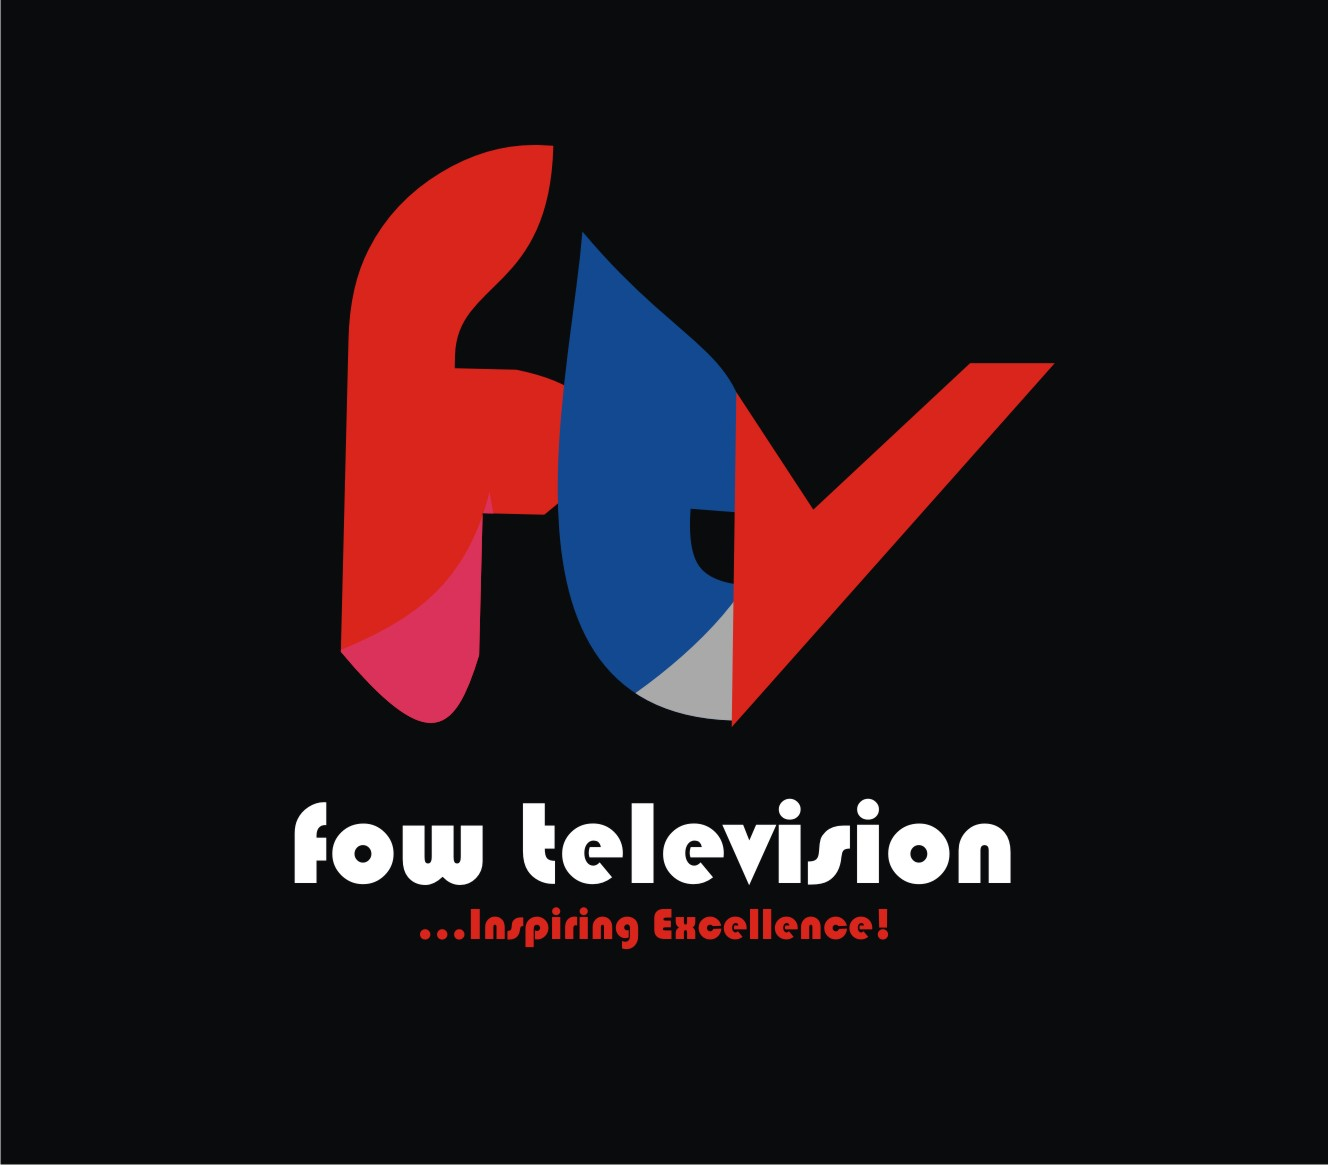 FOW TELEVISION